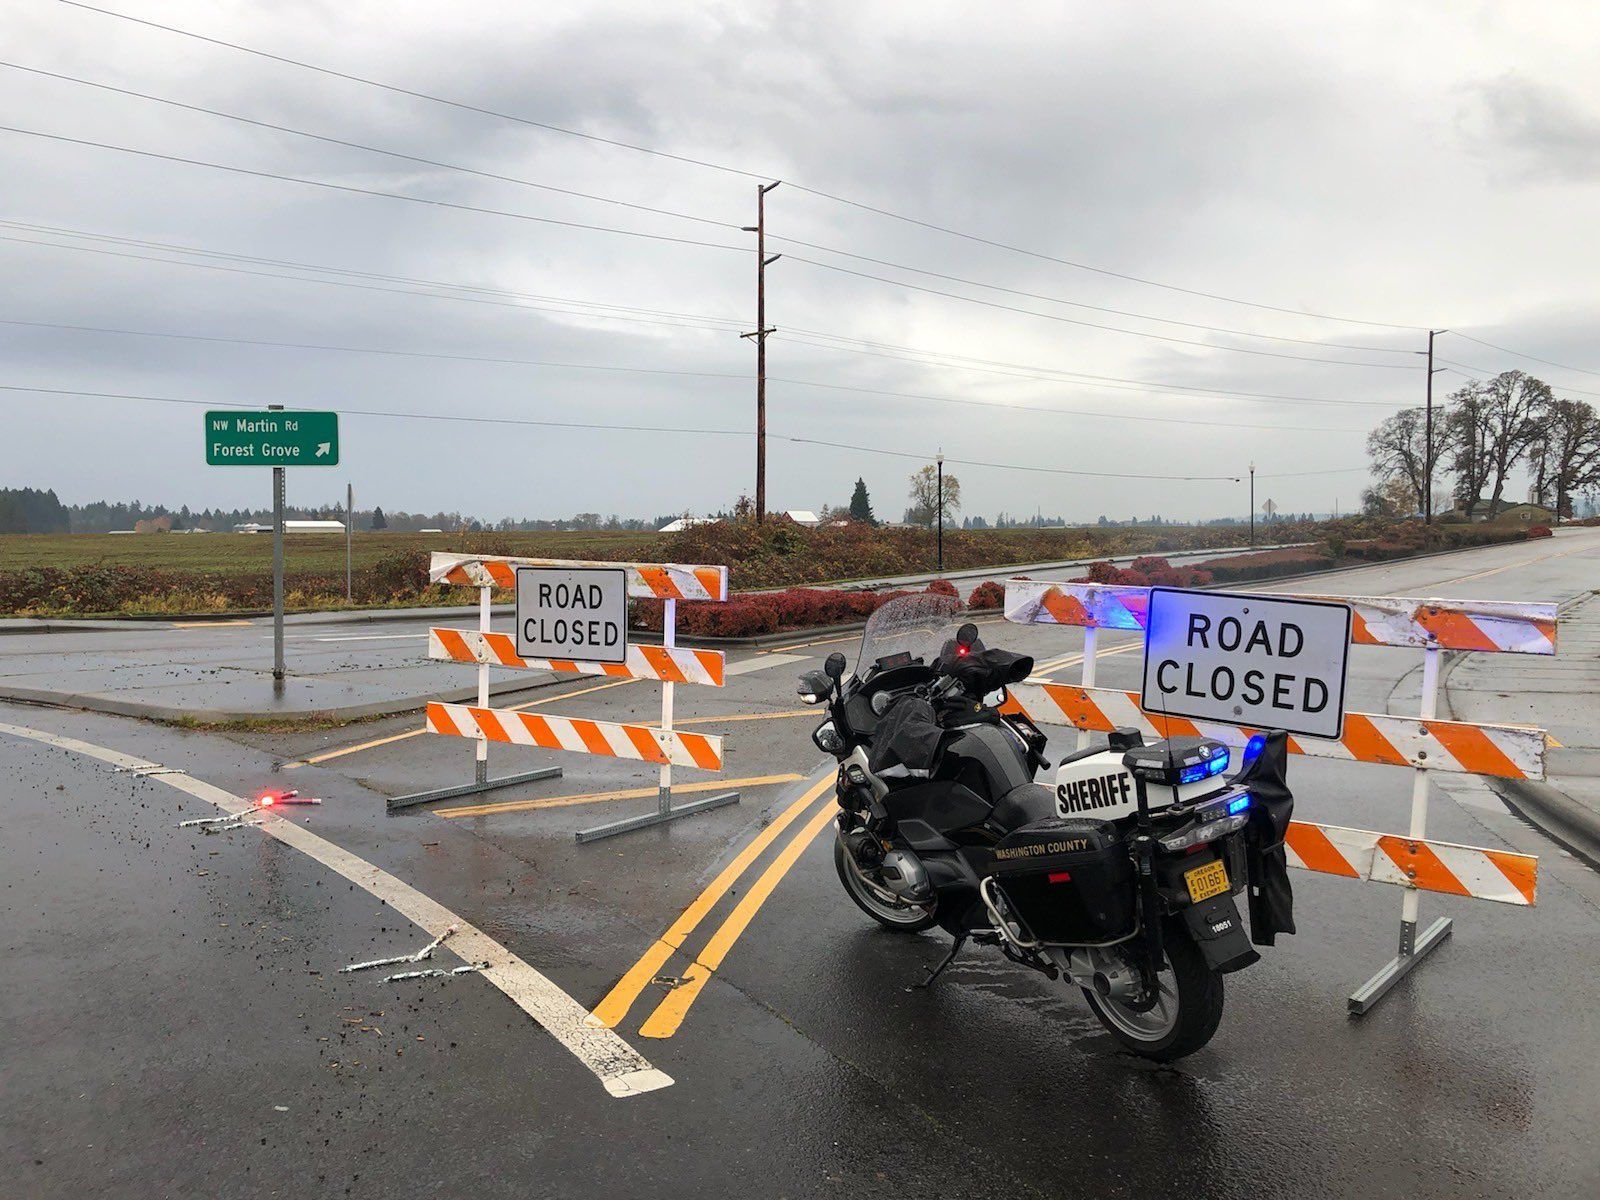 A driver hit and killed a man on Northwest Martin Road near Forest Grove on Nov. 12, 2019. Photo courtesy Washington County Sheriff's Office{ }